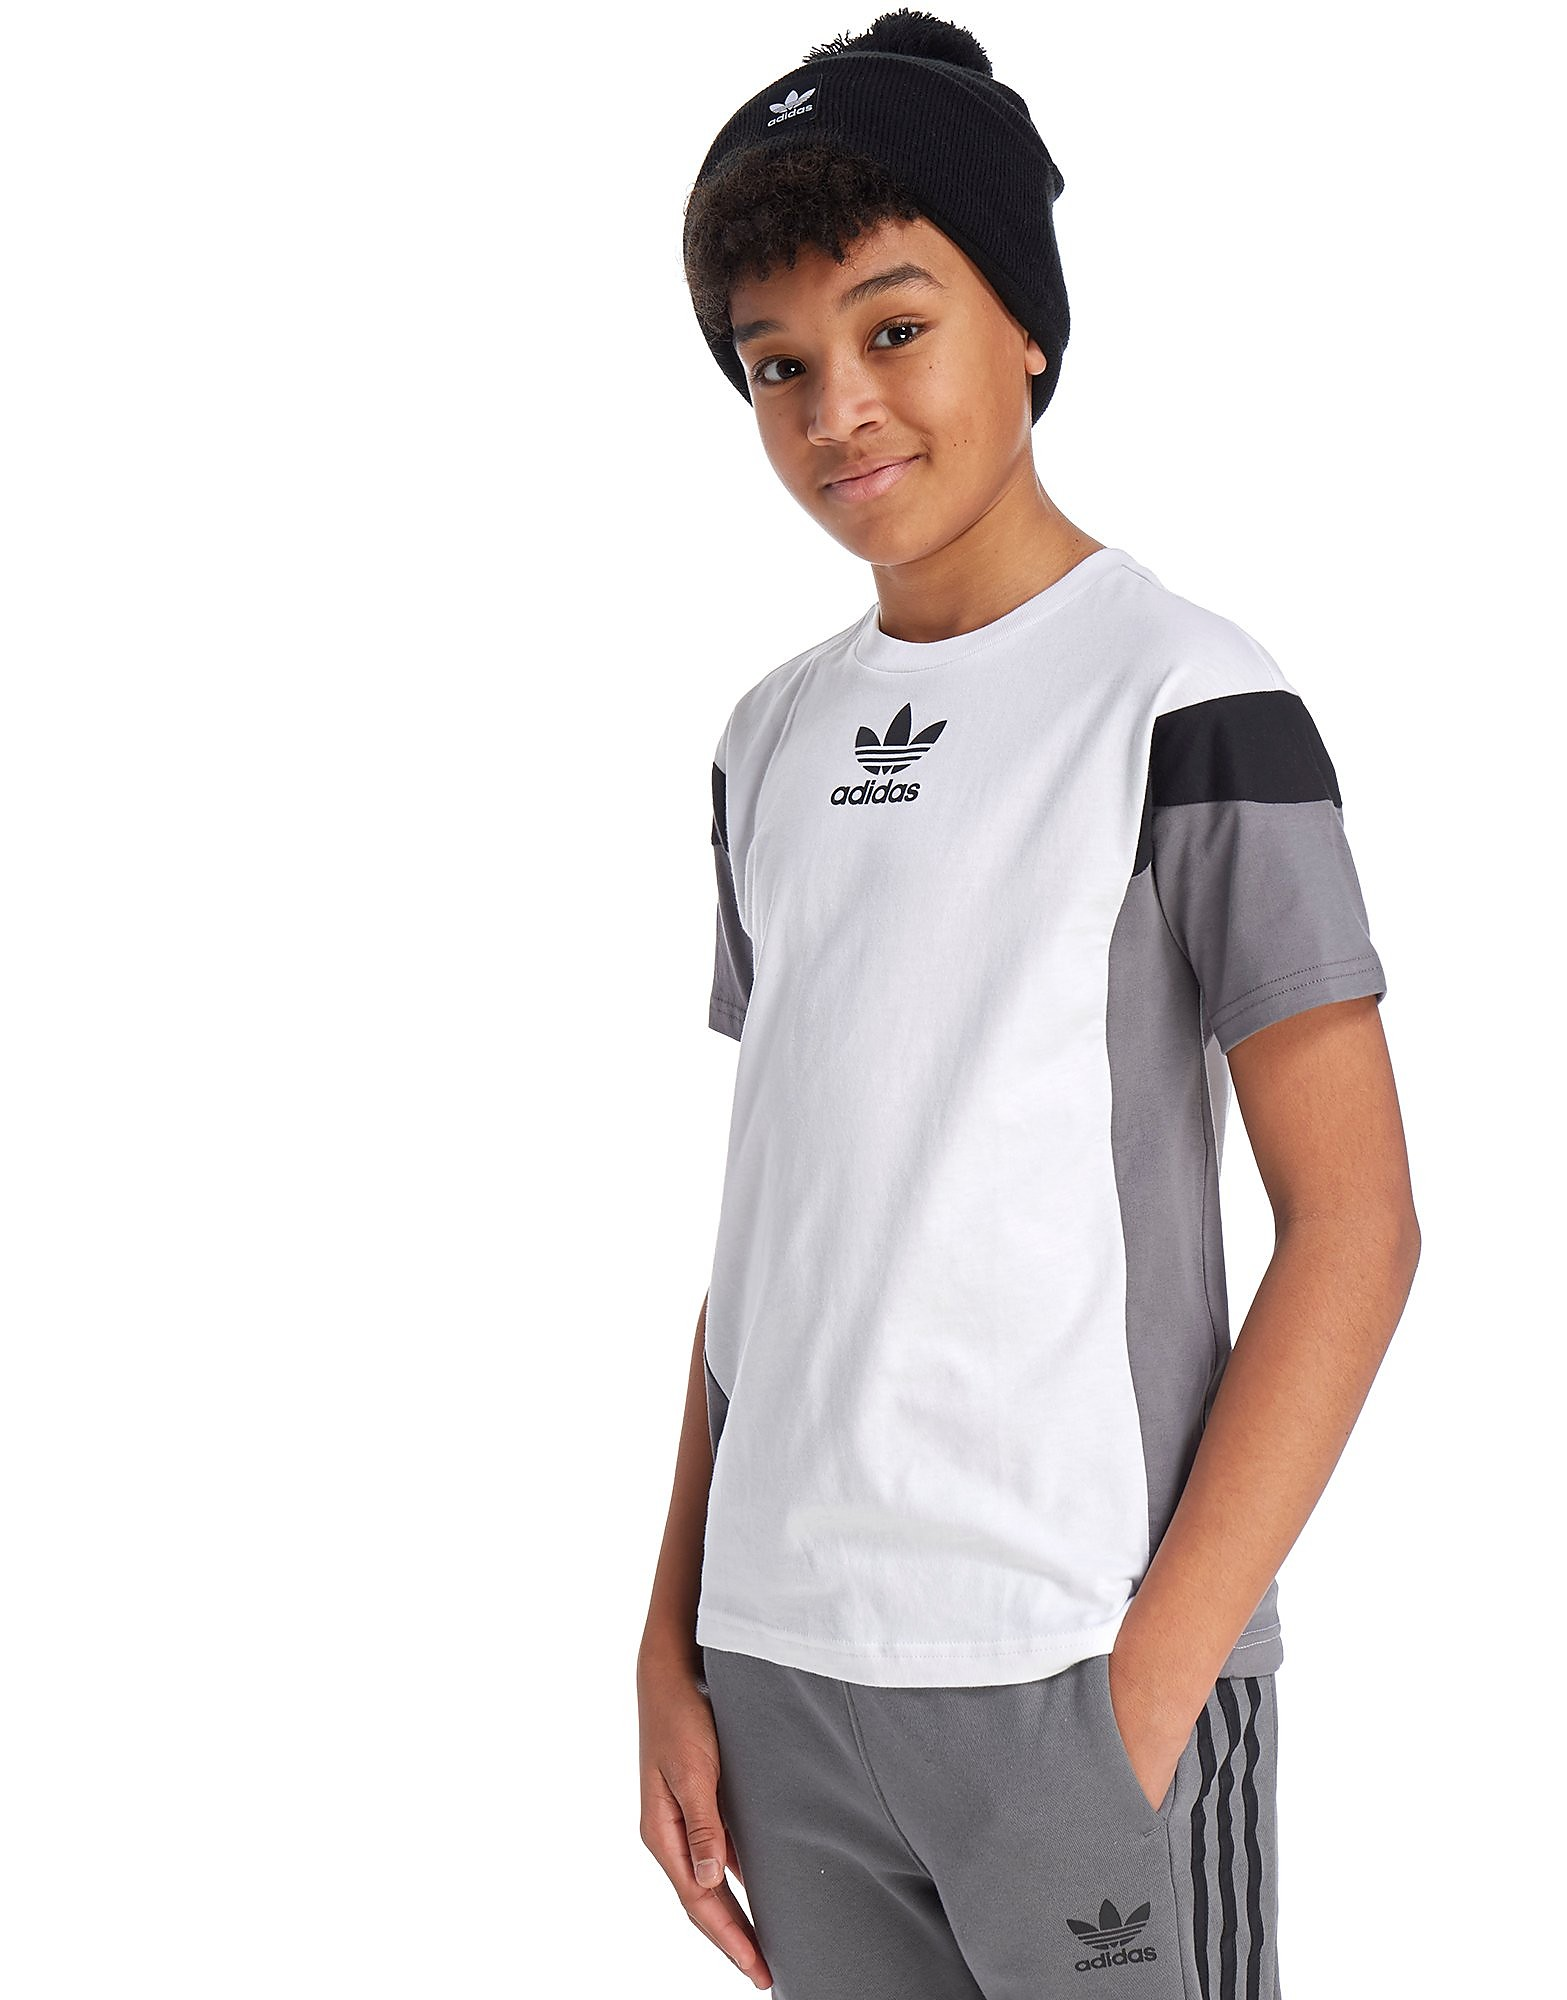 adidas Originals Europa T-Shirt Junior